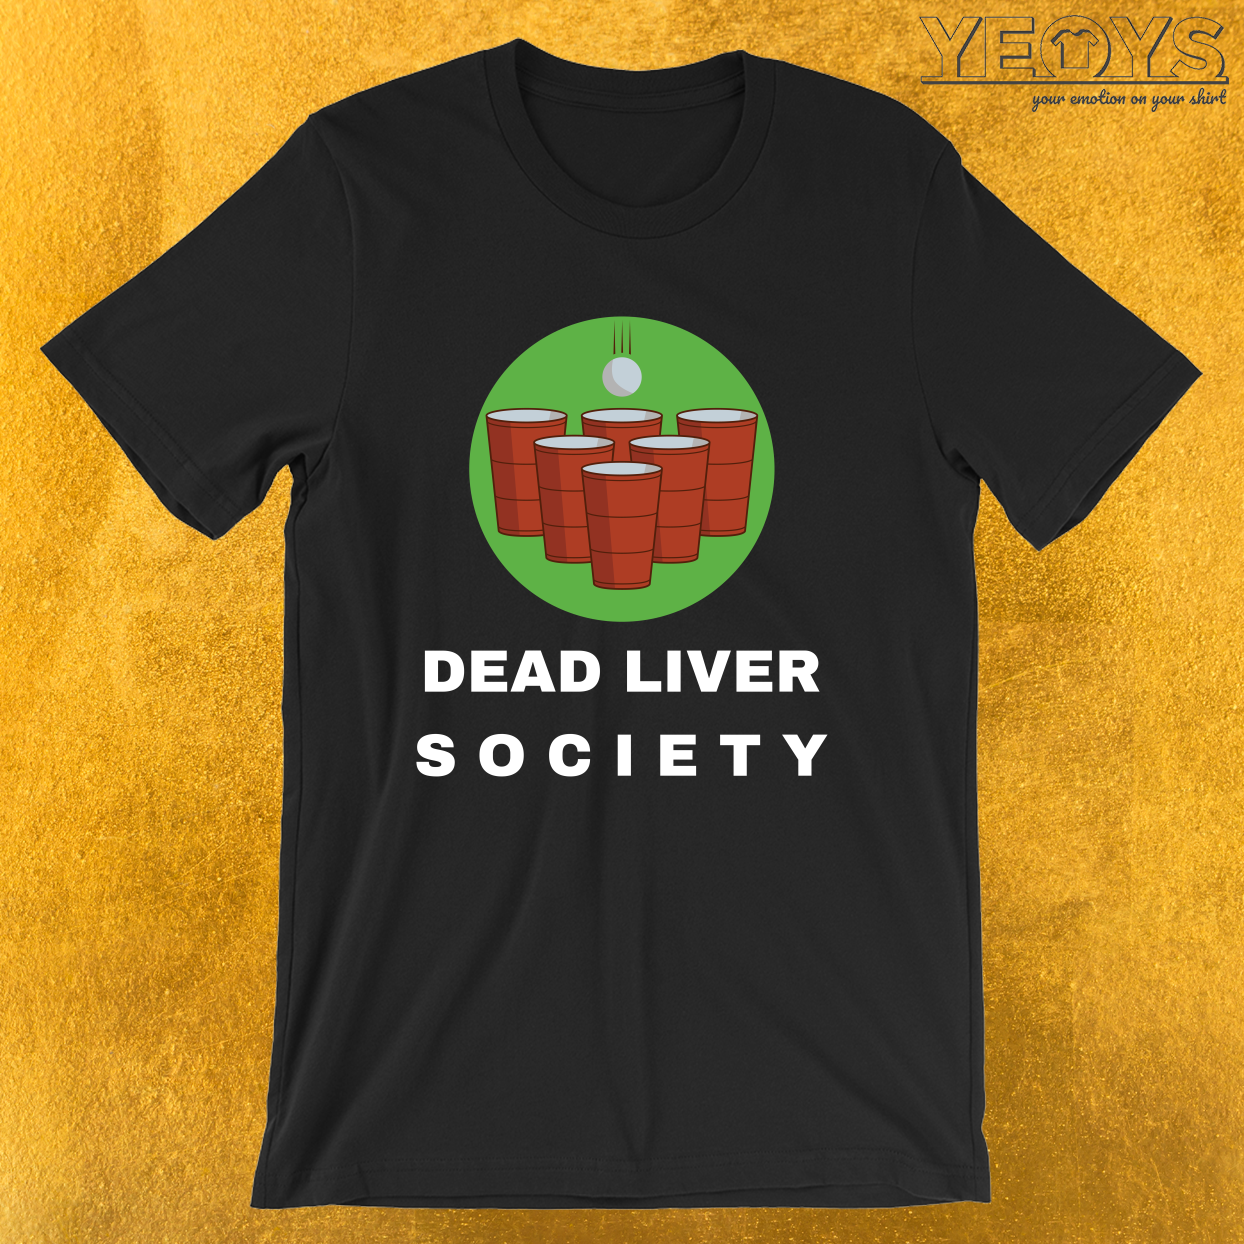 Dead Liver Society – Funny Beer Pong Tee